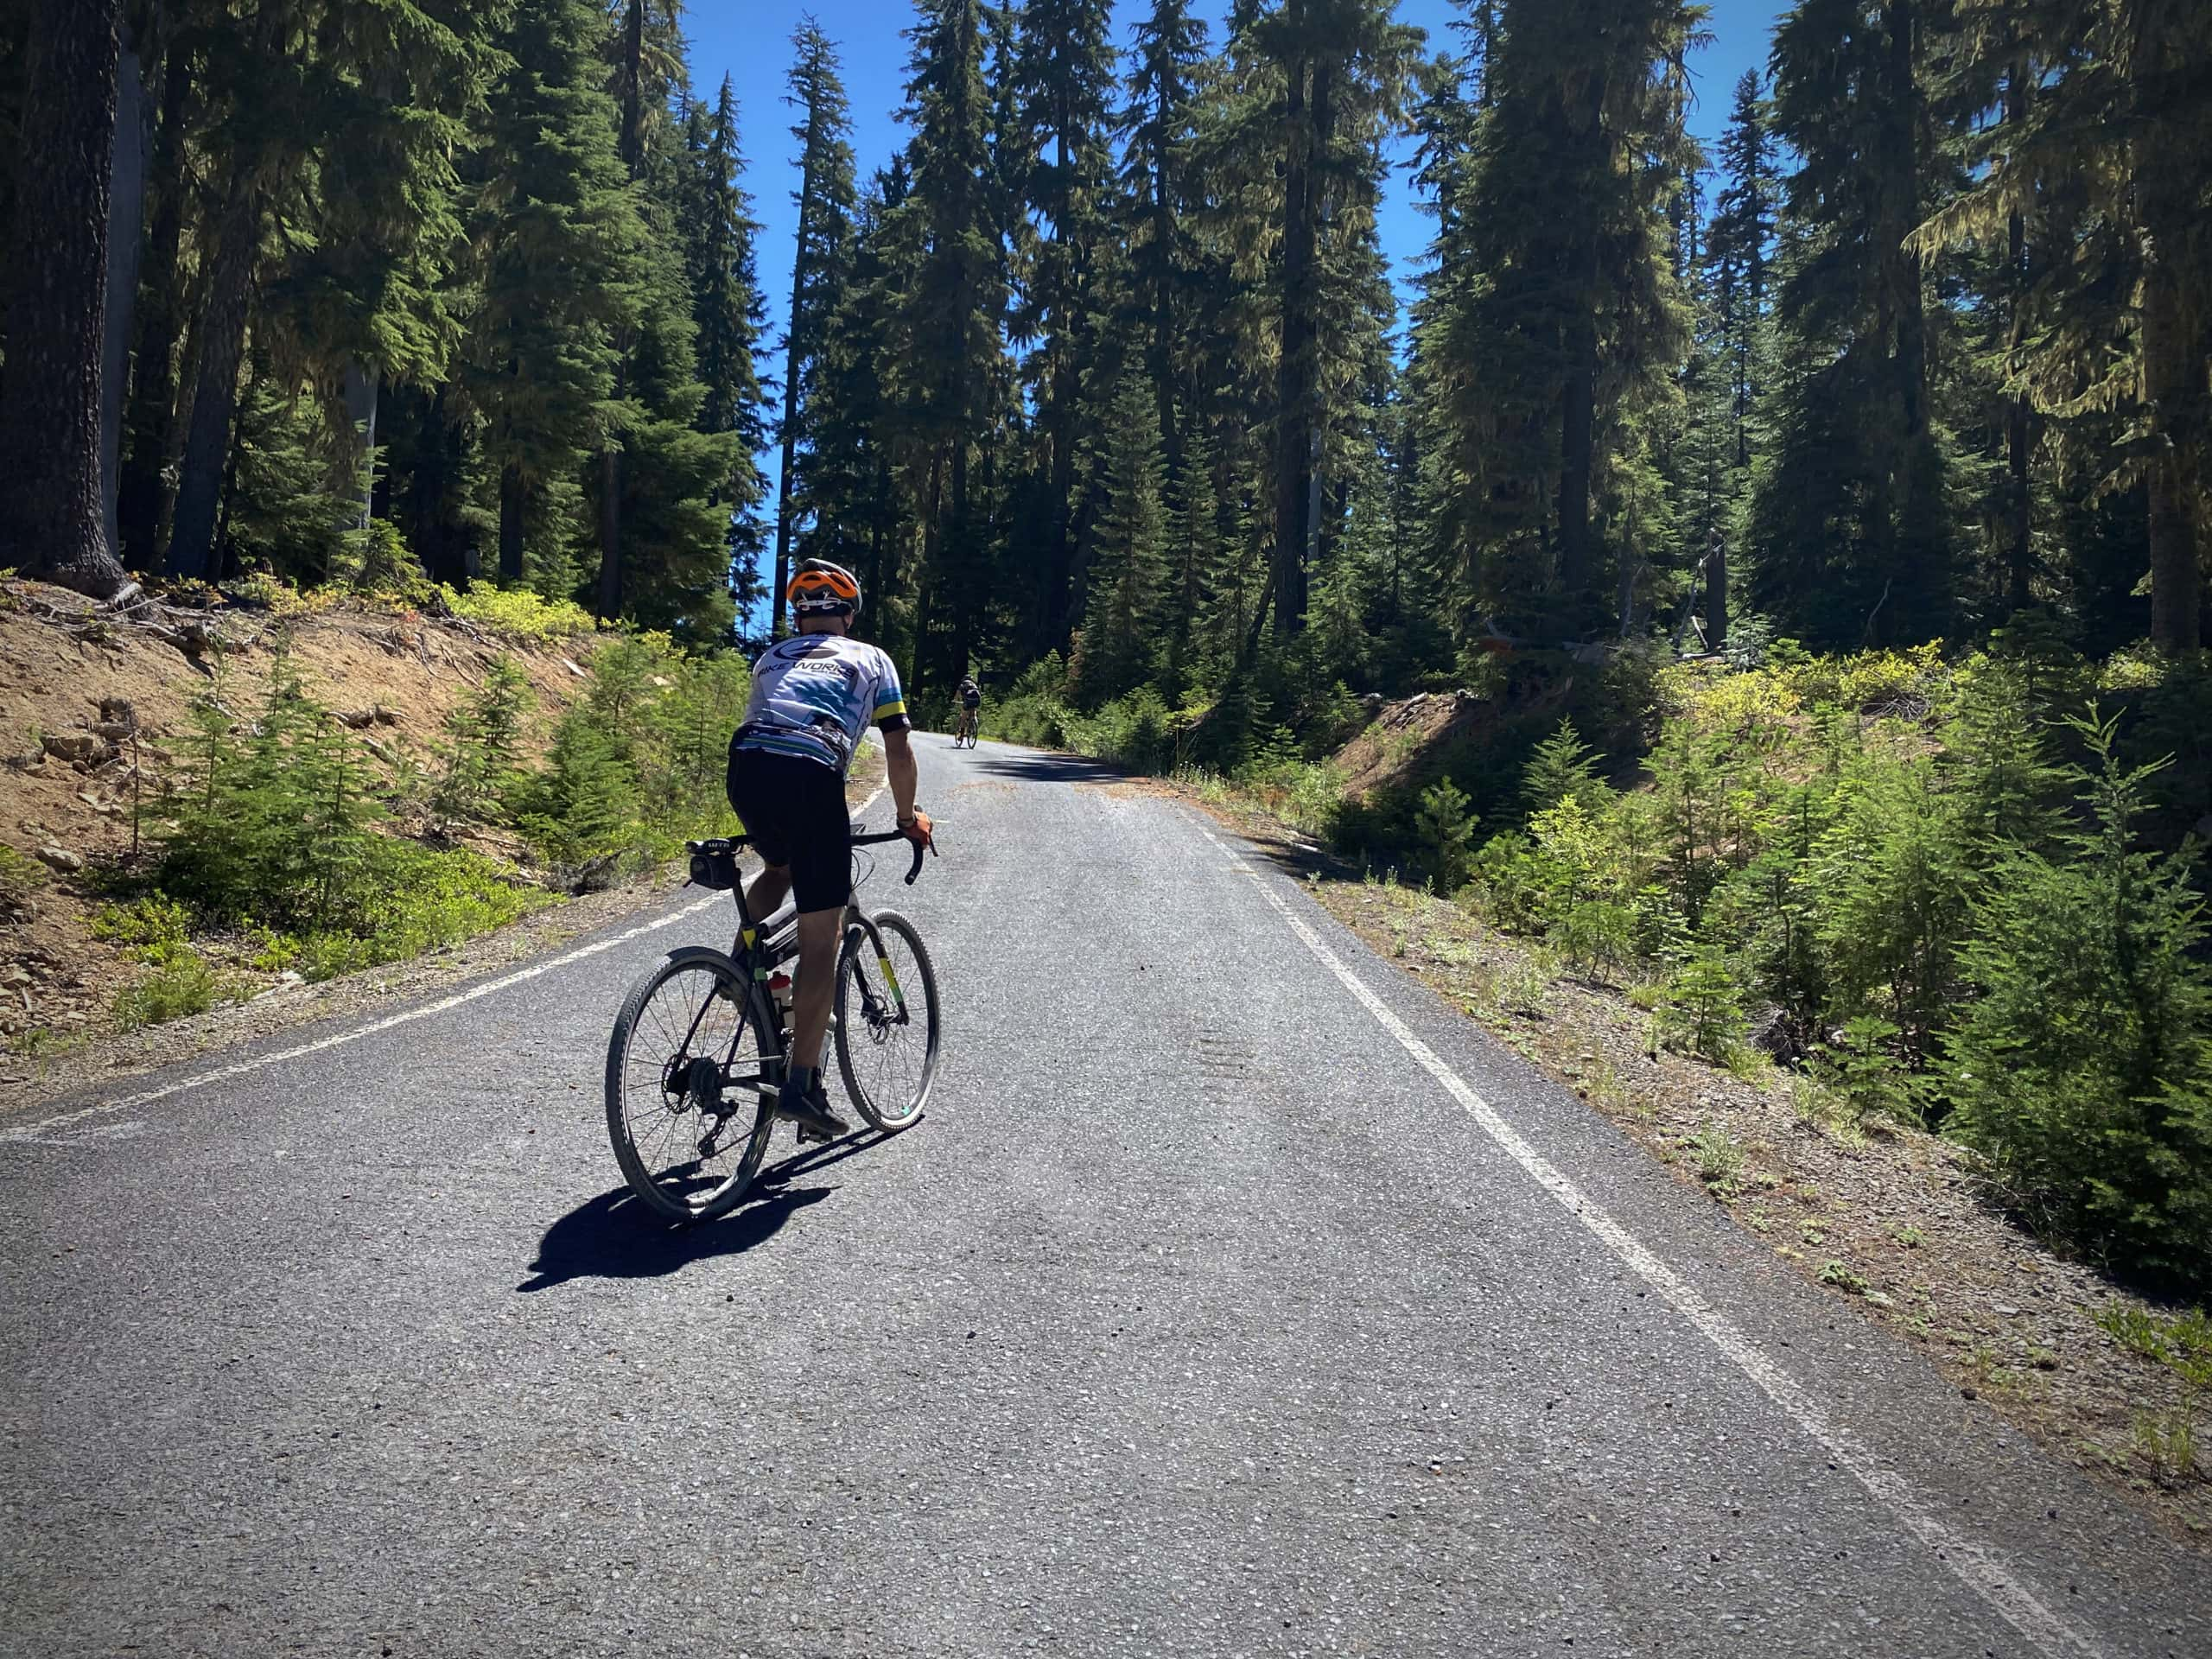 Cyclists making turn from gravel road to paved road in the North Umpqua National Forest.